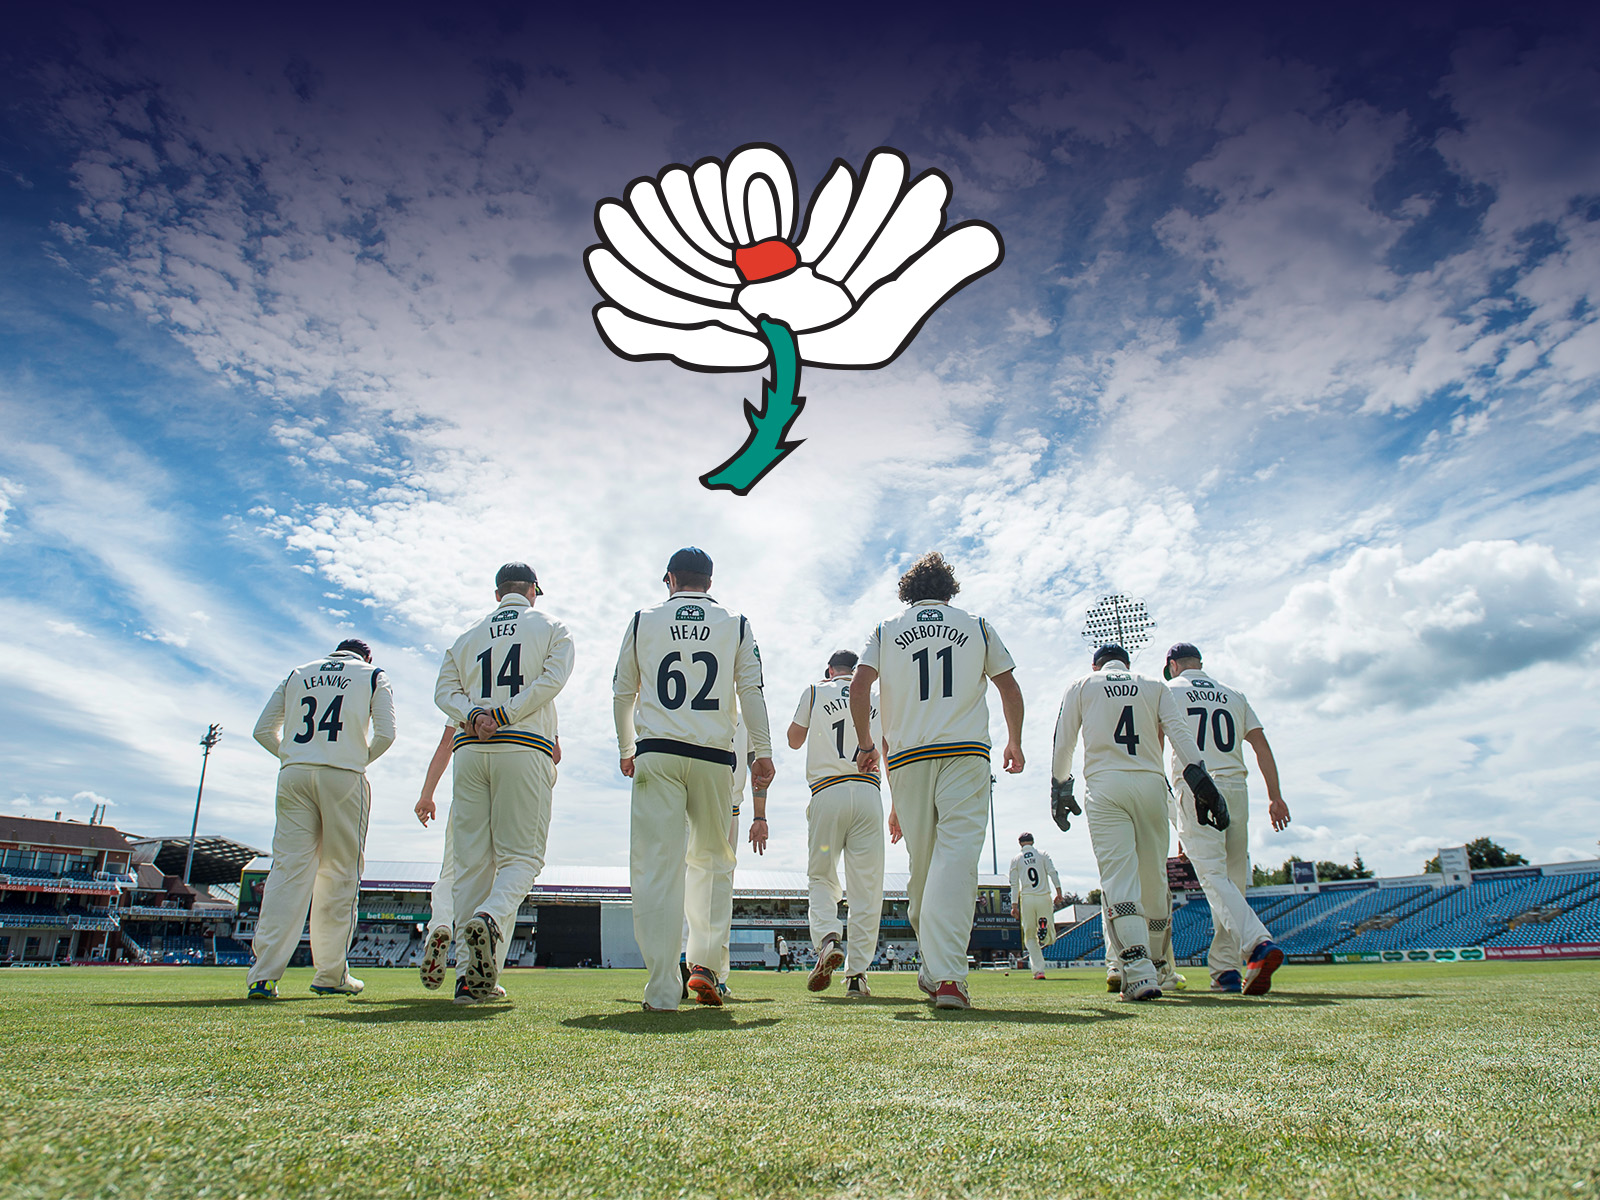 desktop wallpapers the club yorkshire county cricket club